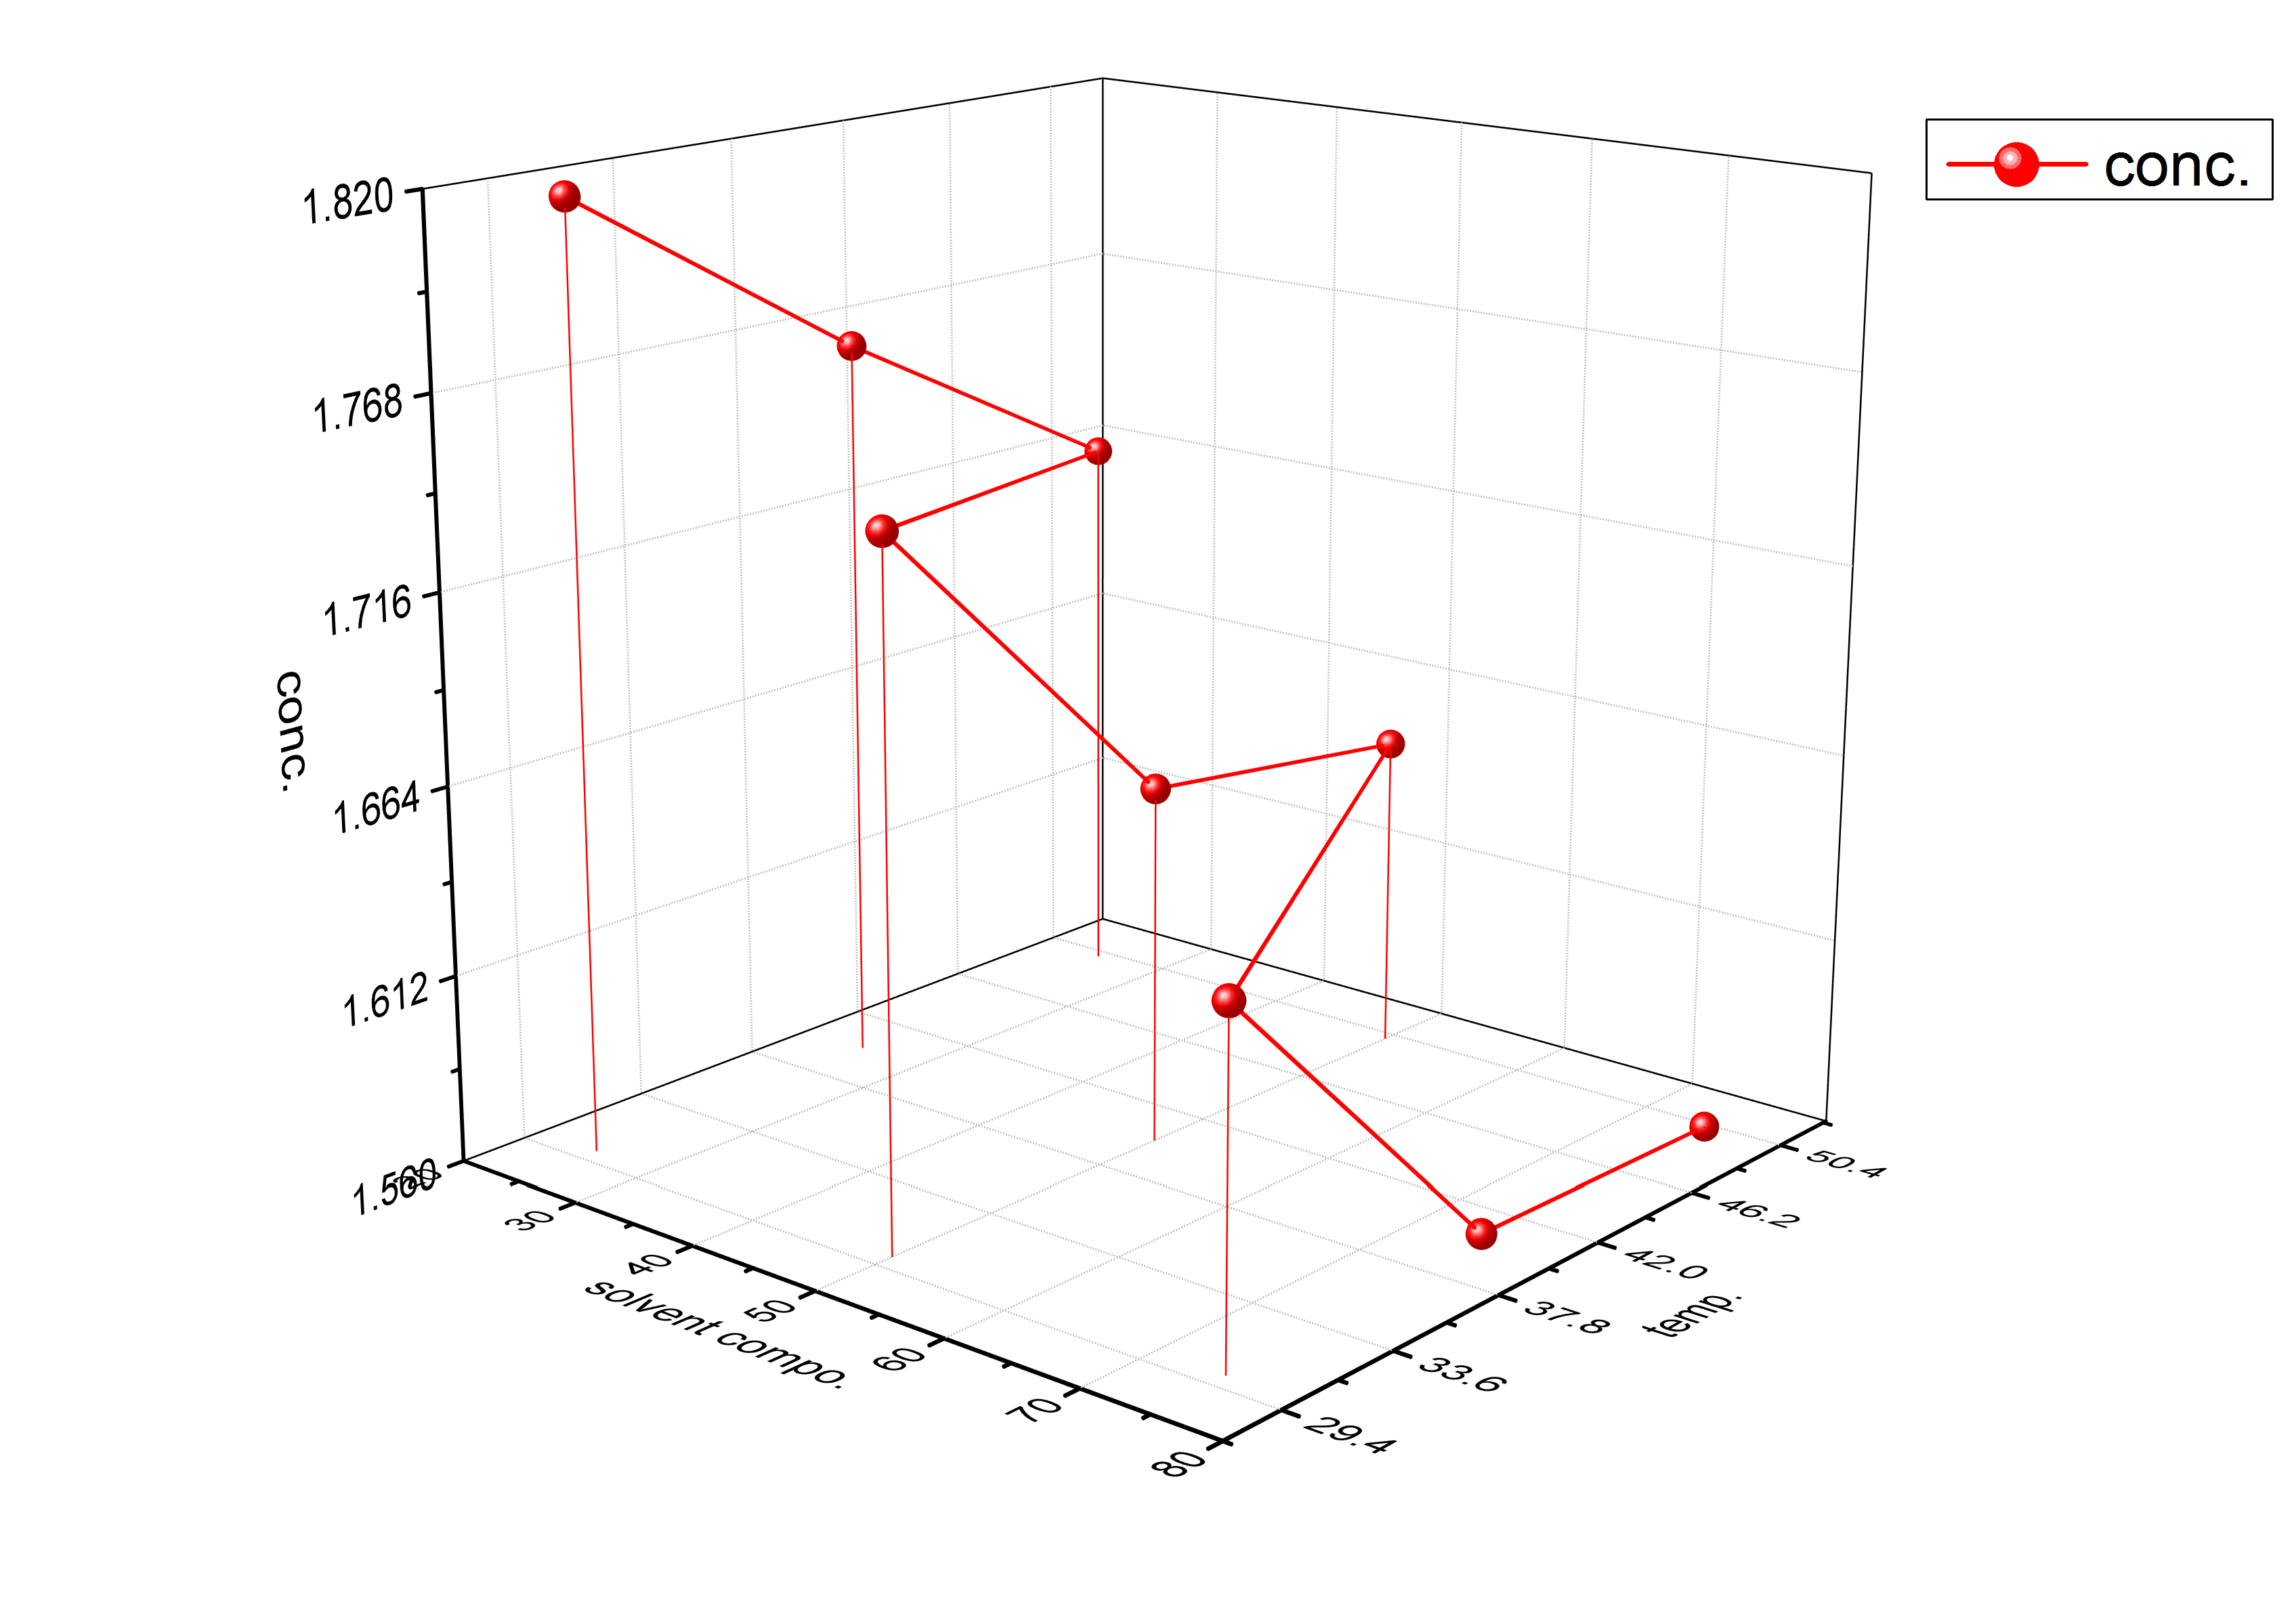 Does Anyone Know How Plot 3d Surface Graph